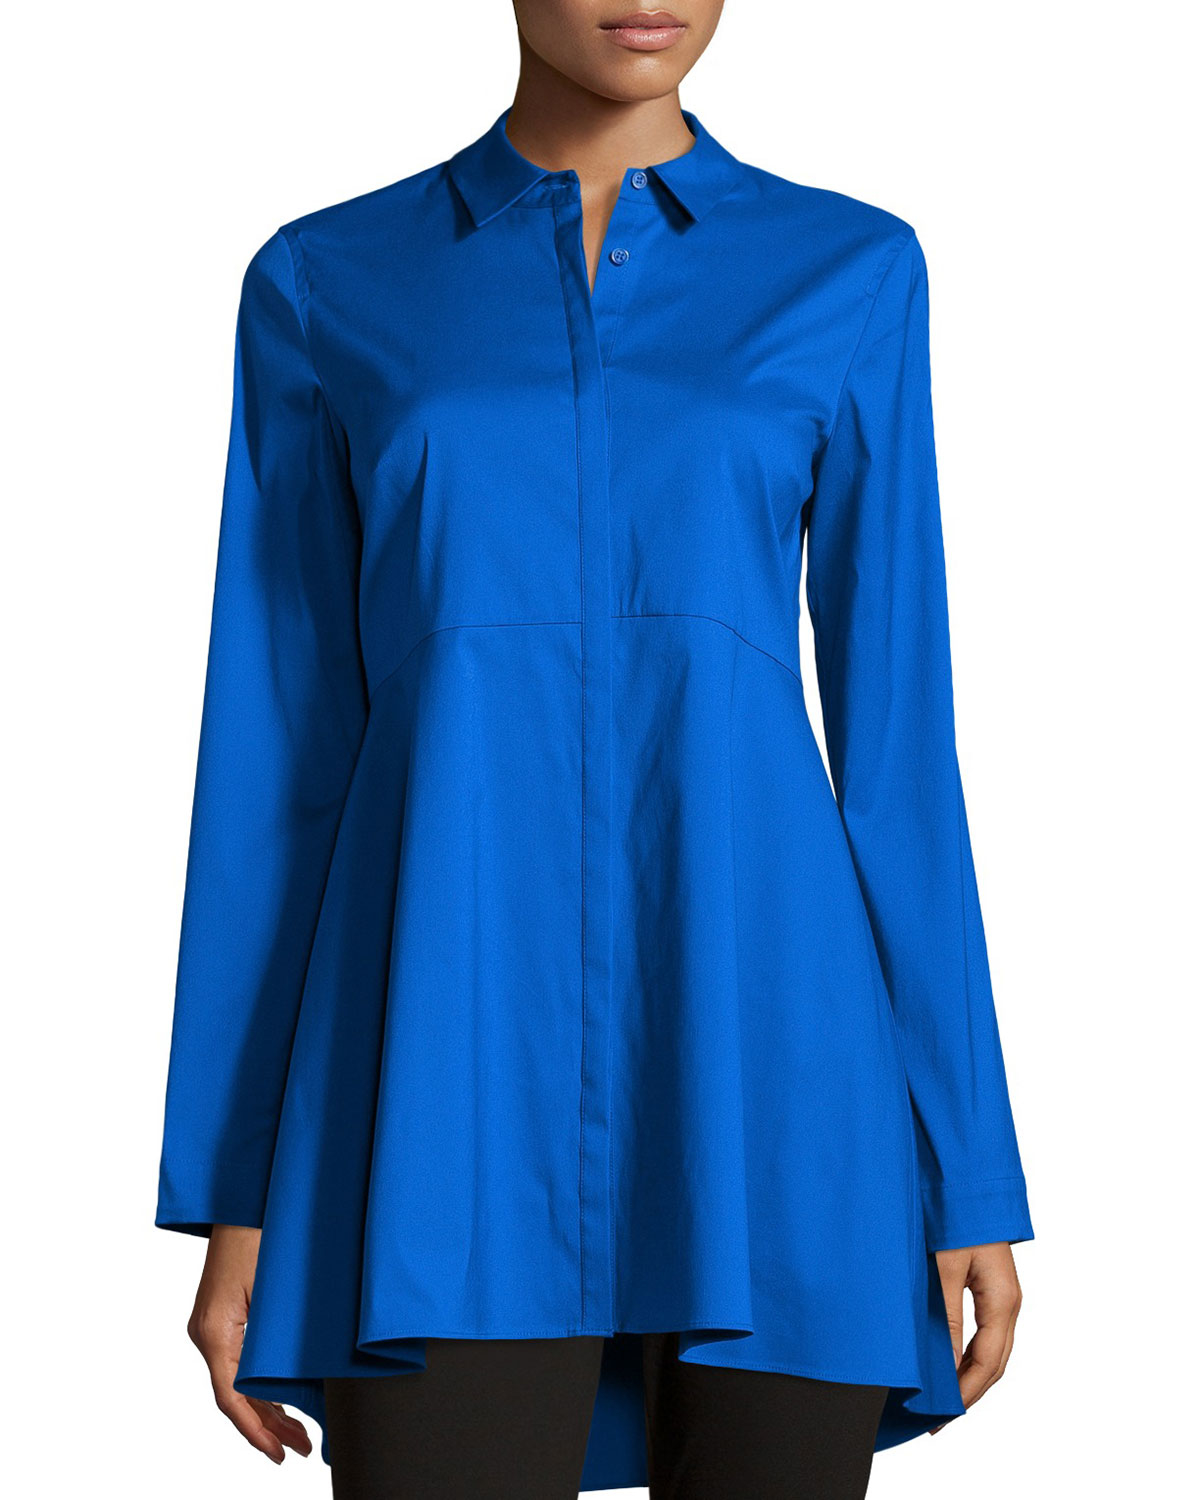 887a4bc3b00 Royal Blue Round Neck High Low Blouse